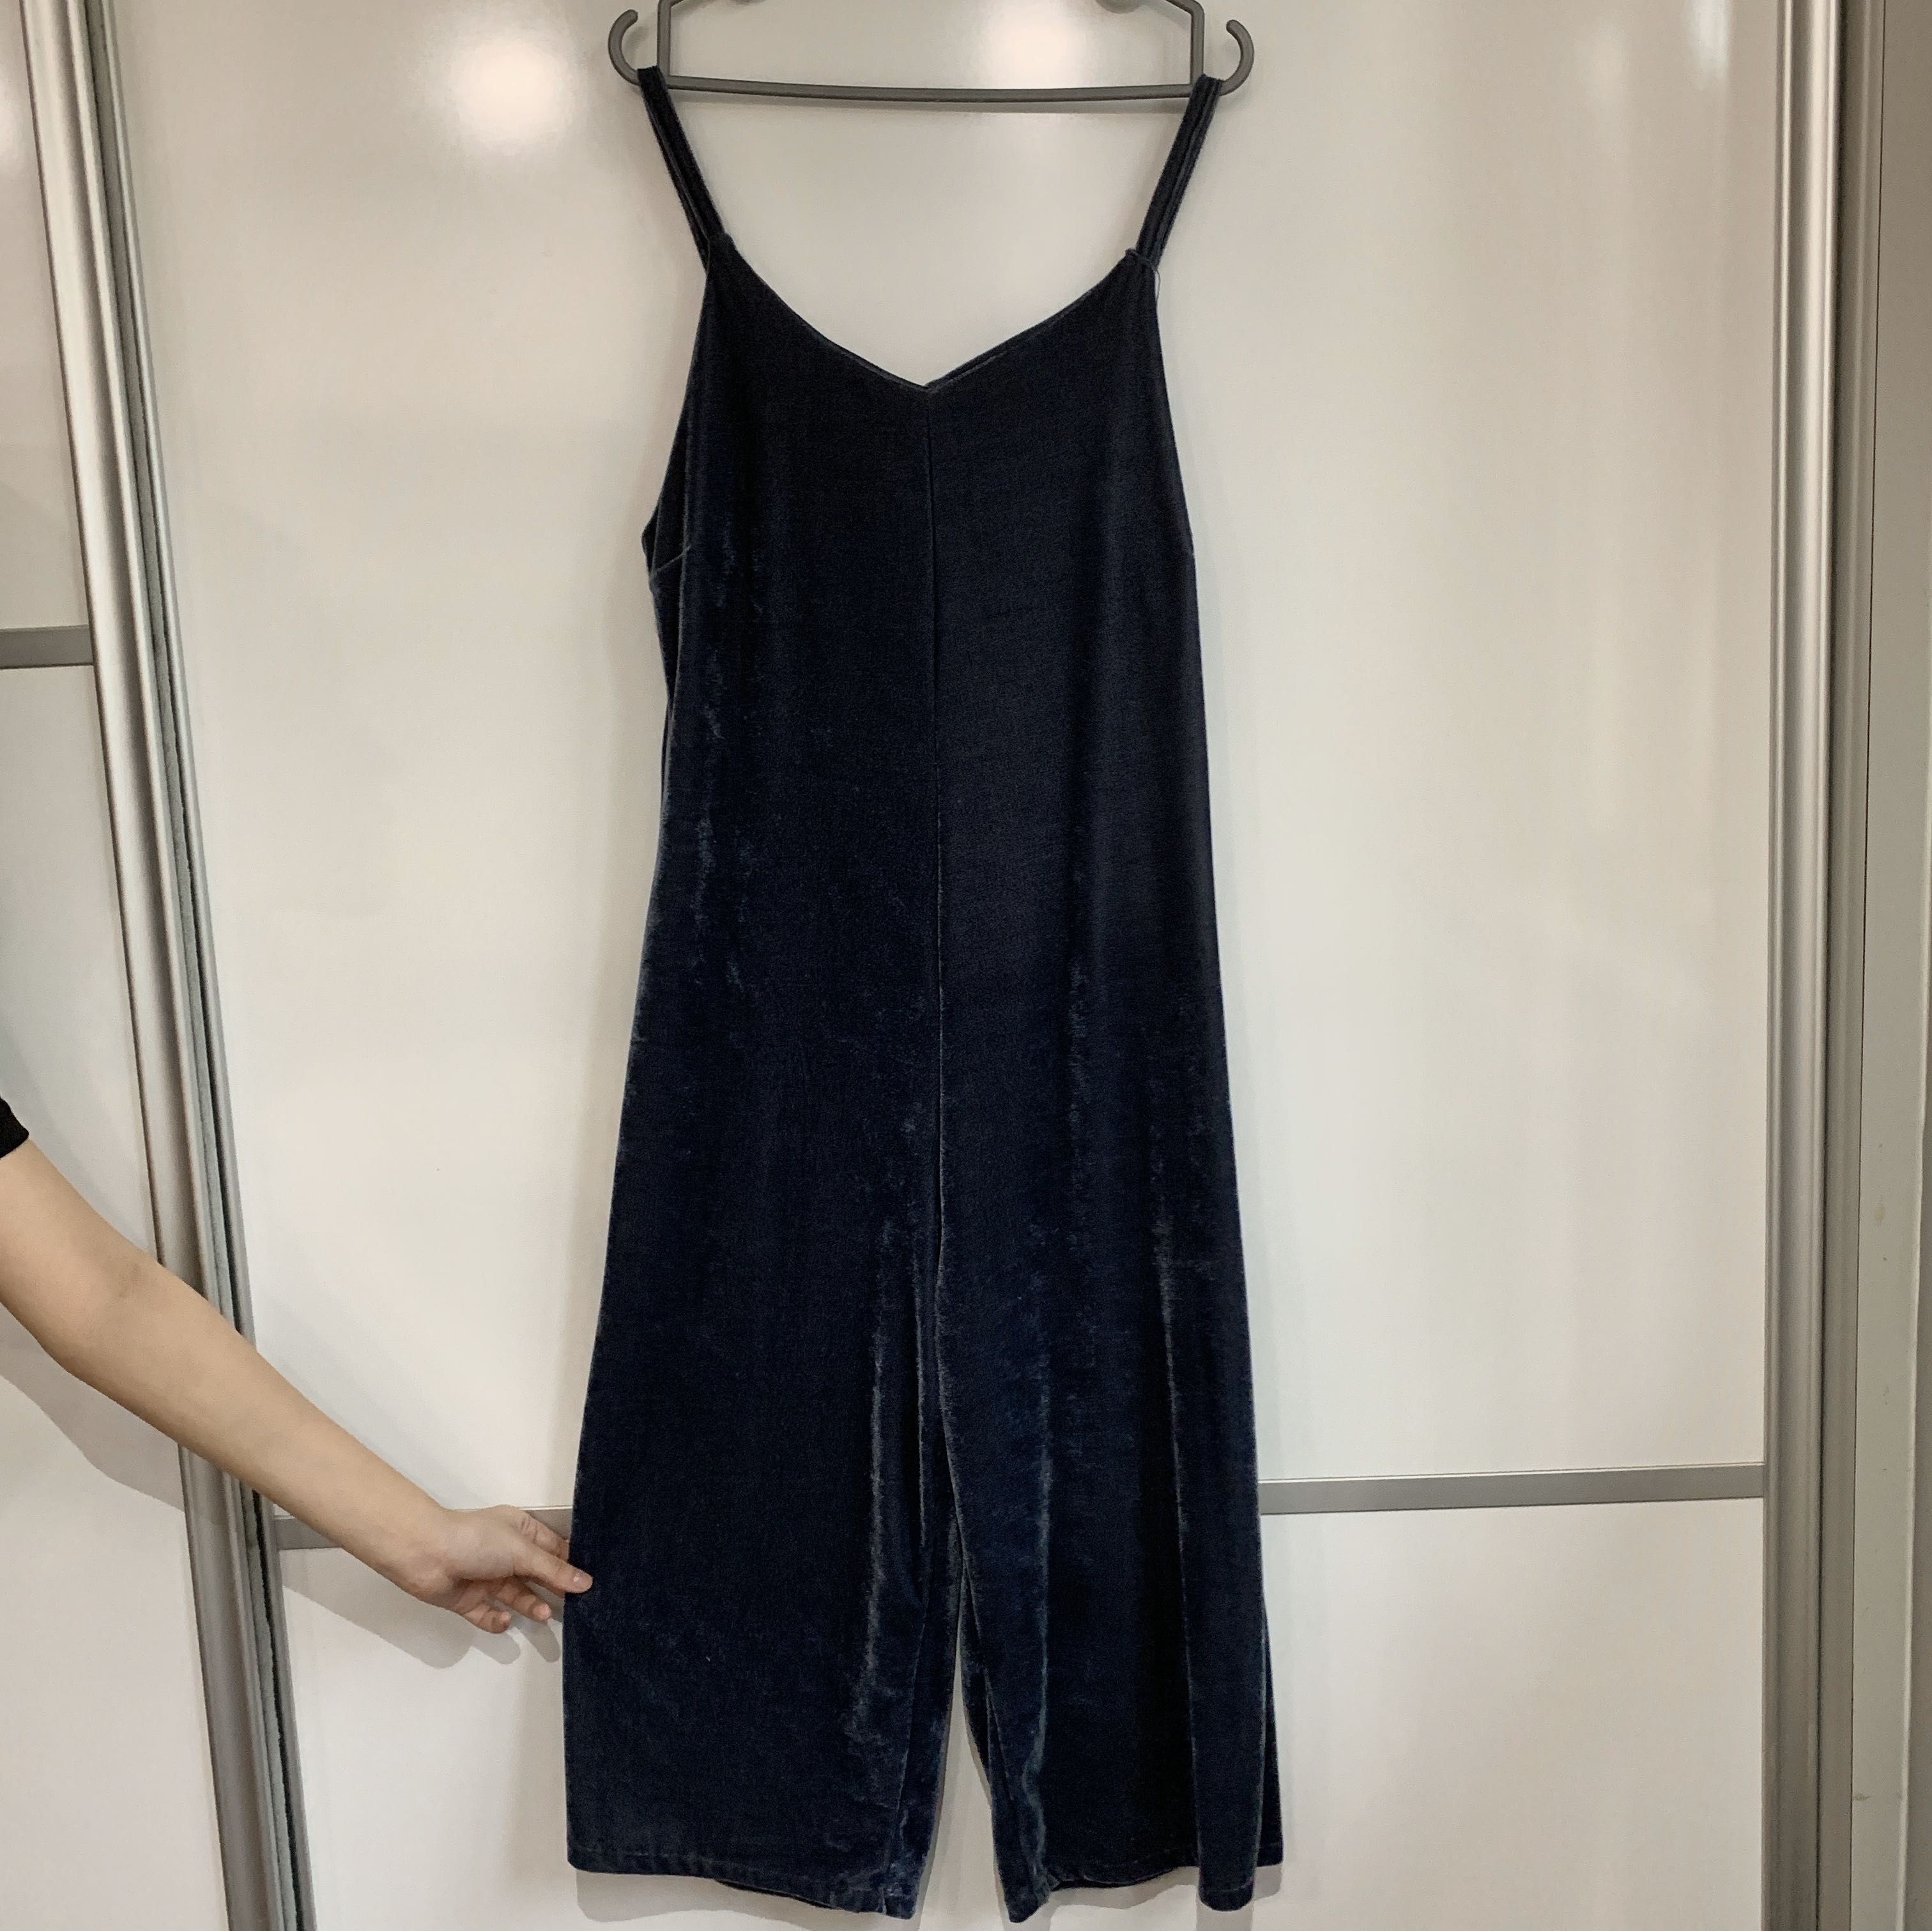 Navy Velvet Jumpsuit Women S Fashion Clothes Rompers Jumpsuits On Carousell